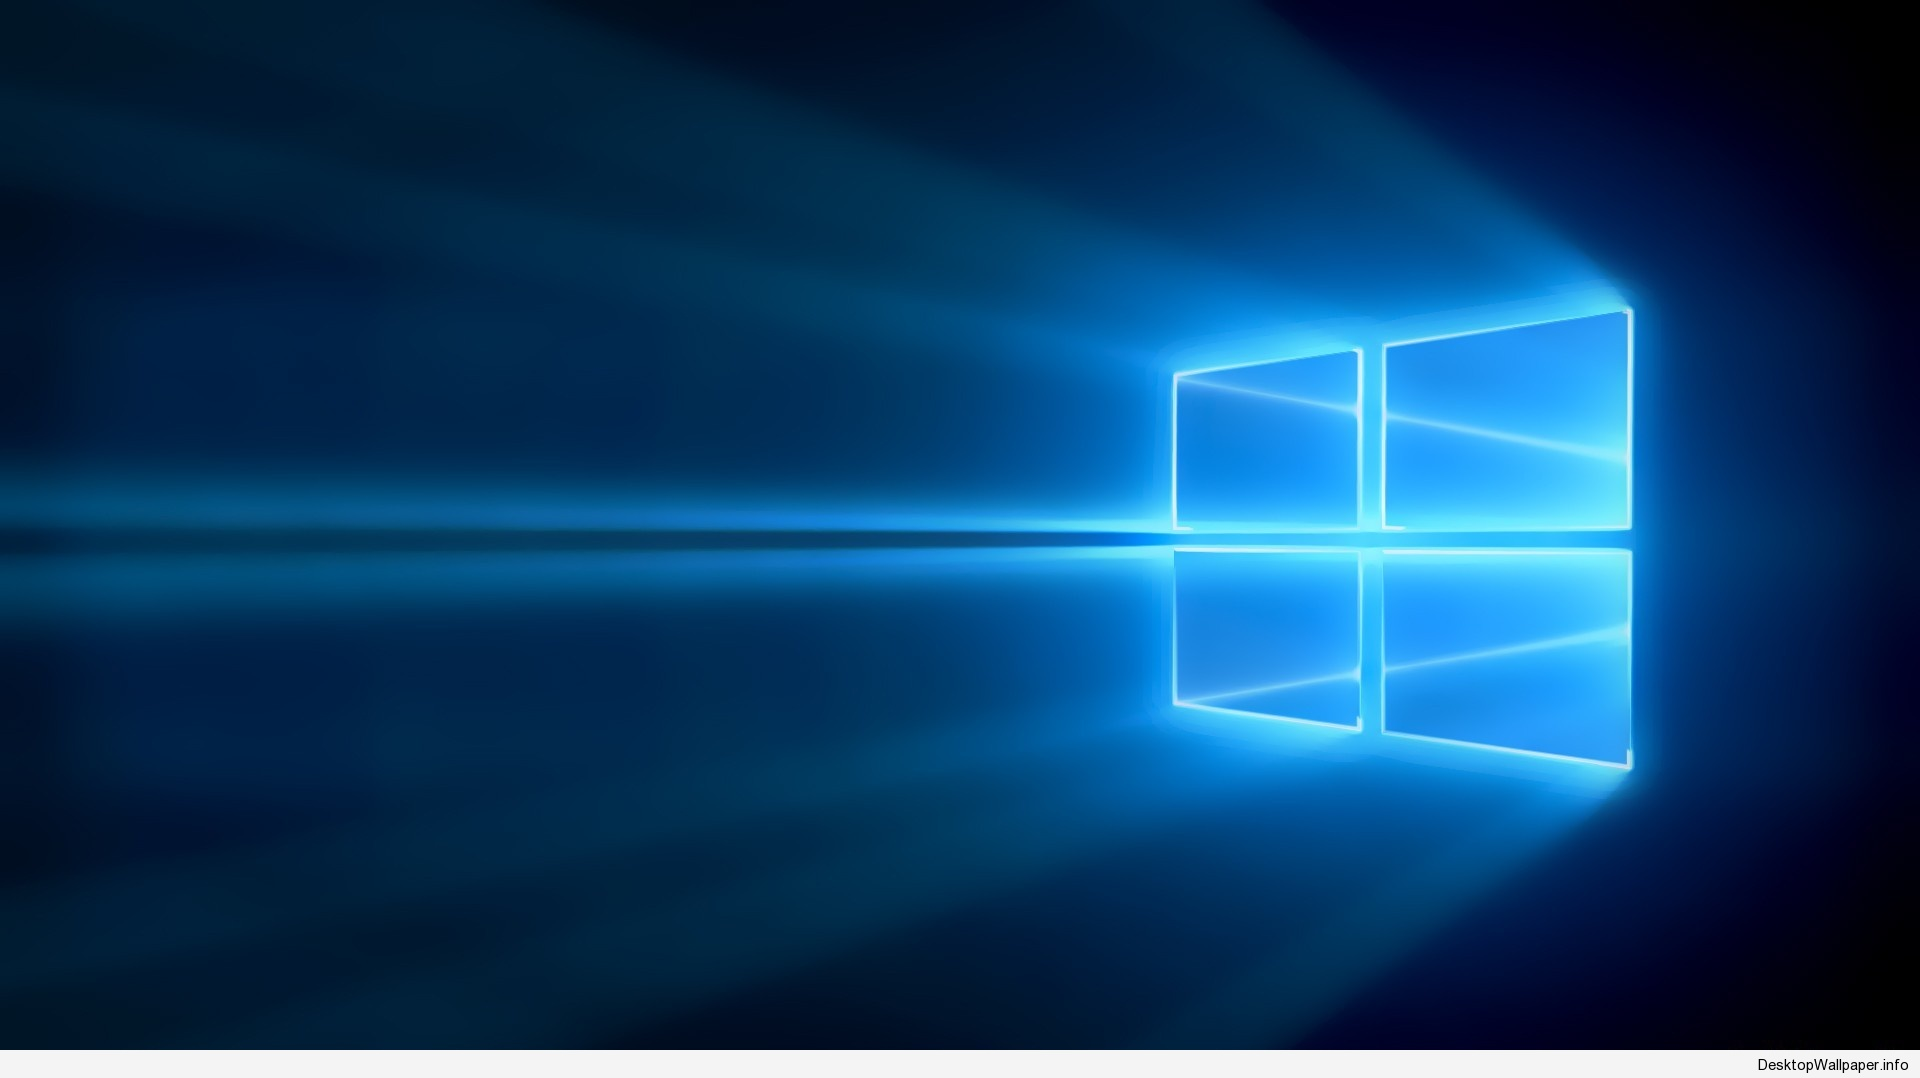 Windows 10 Cool Wallpapers Posted By Samantha Anderson